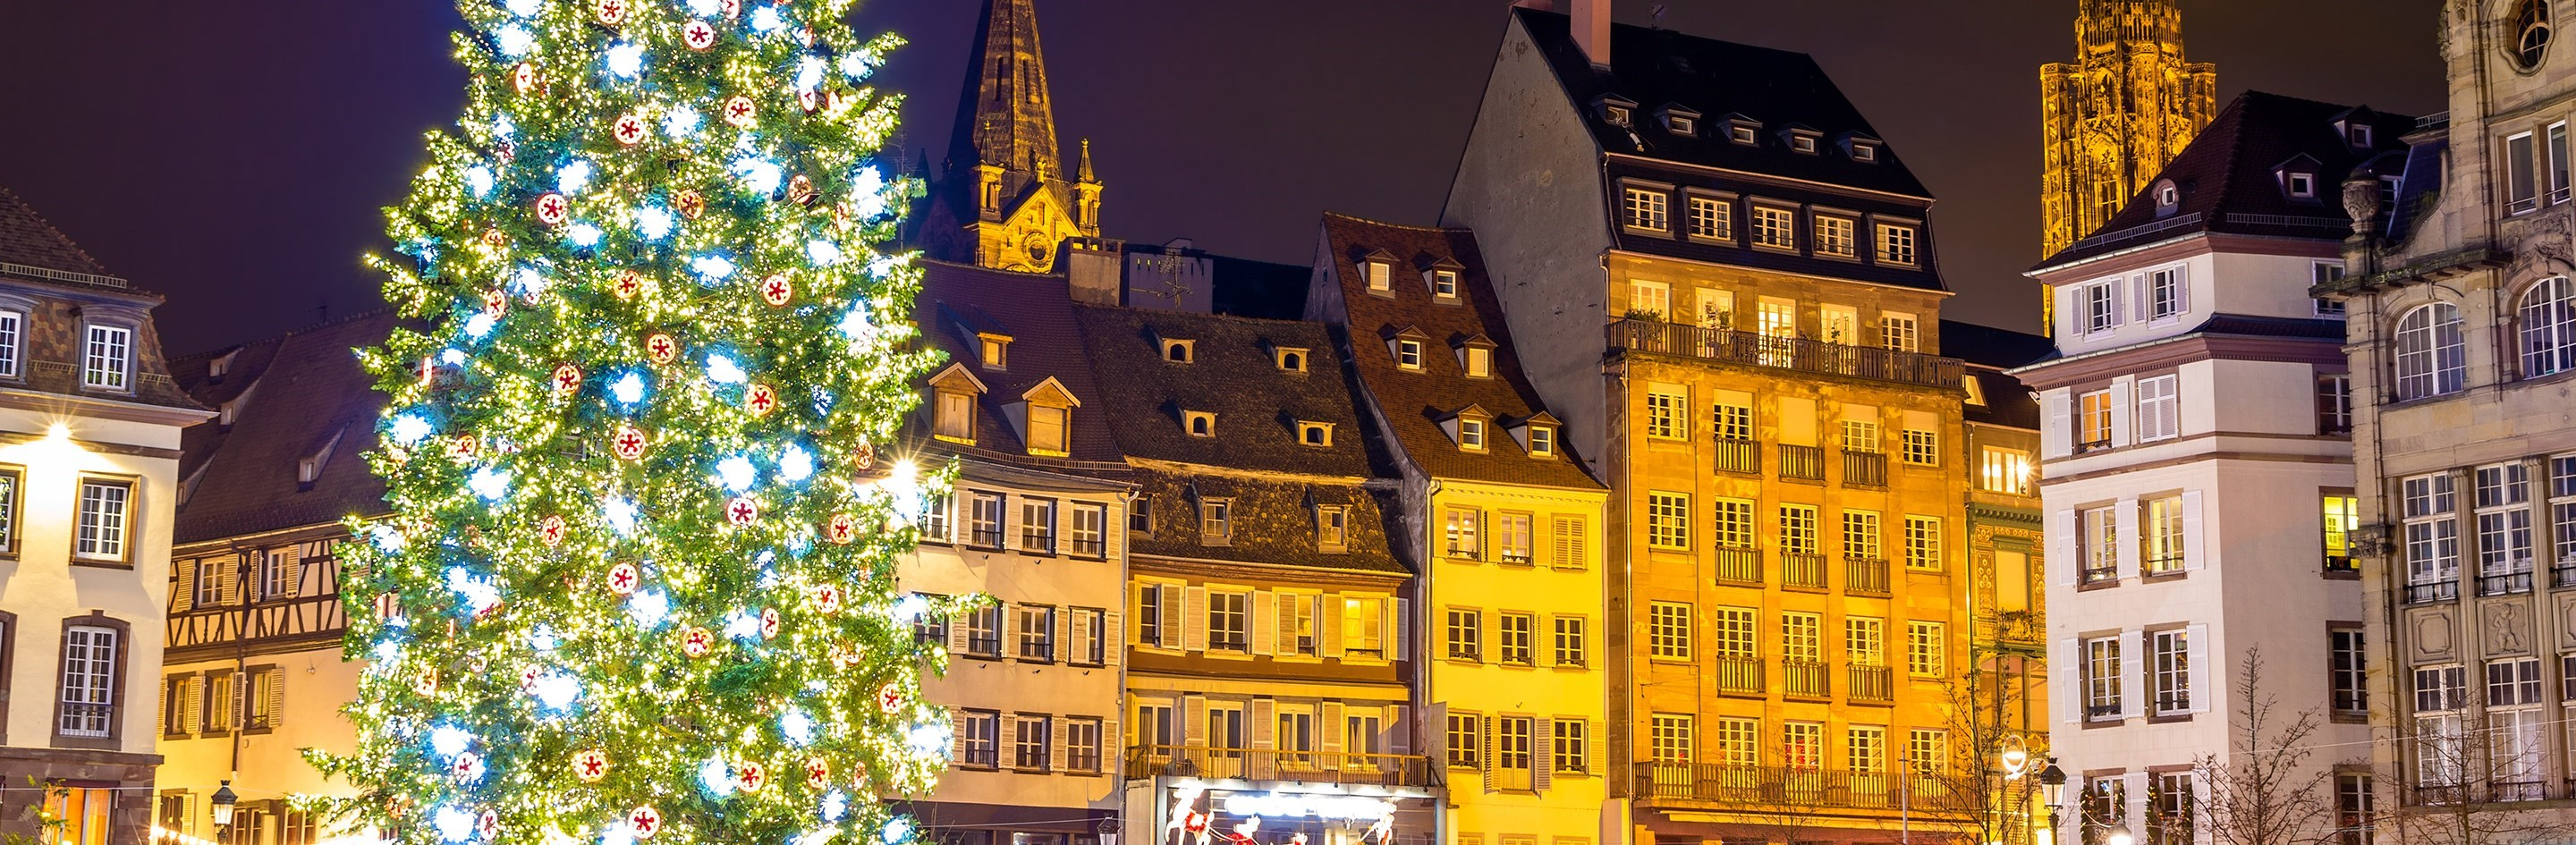 amawaterways - When Do Cruise Ships Decorated For Christmas